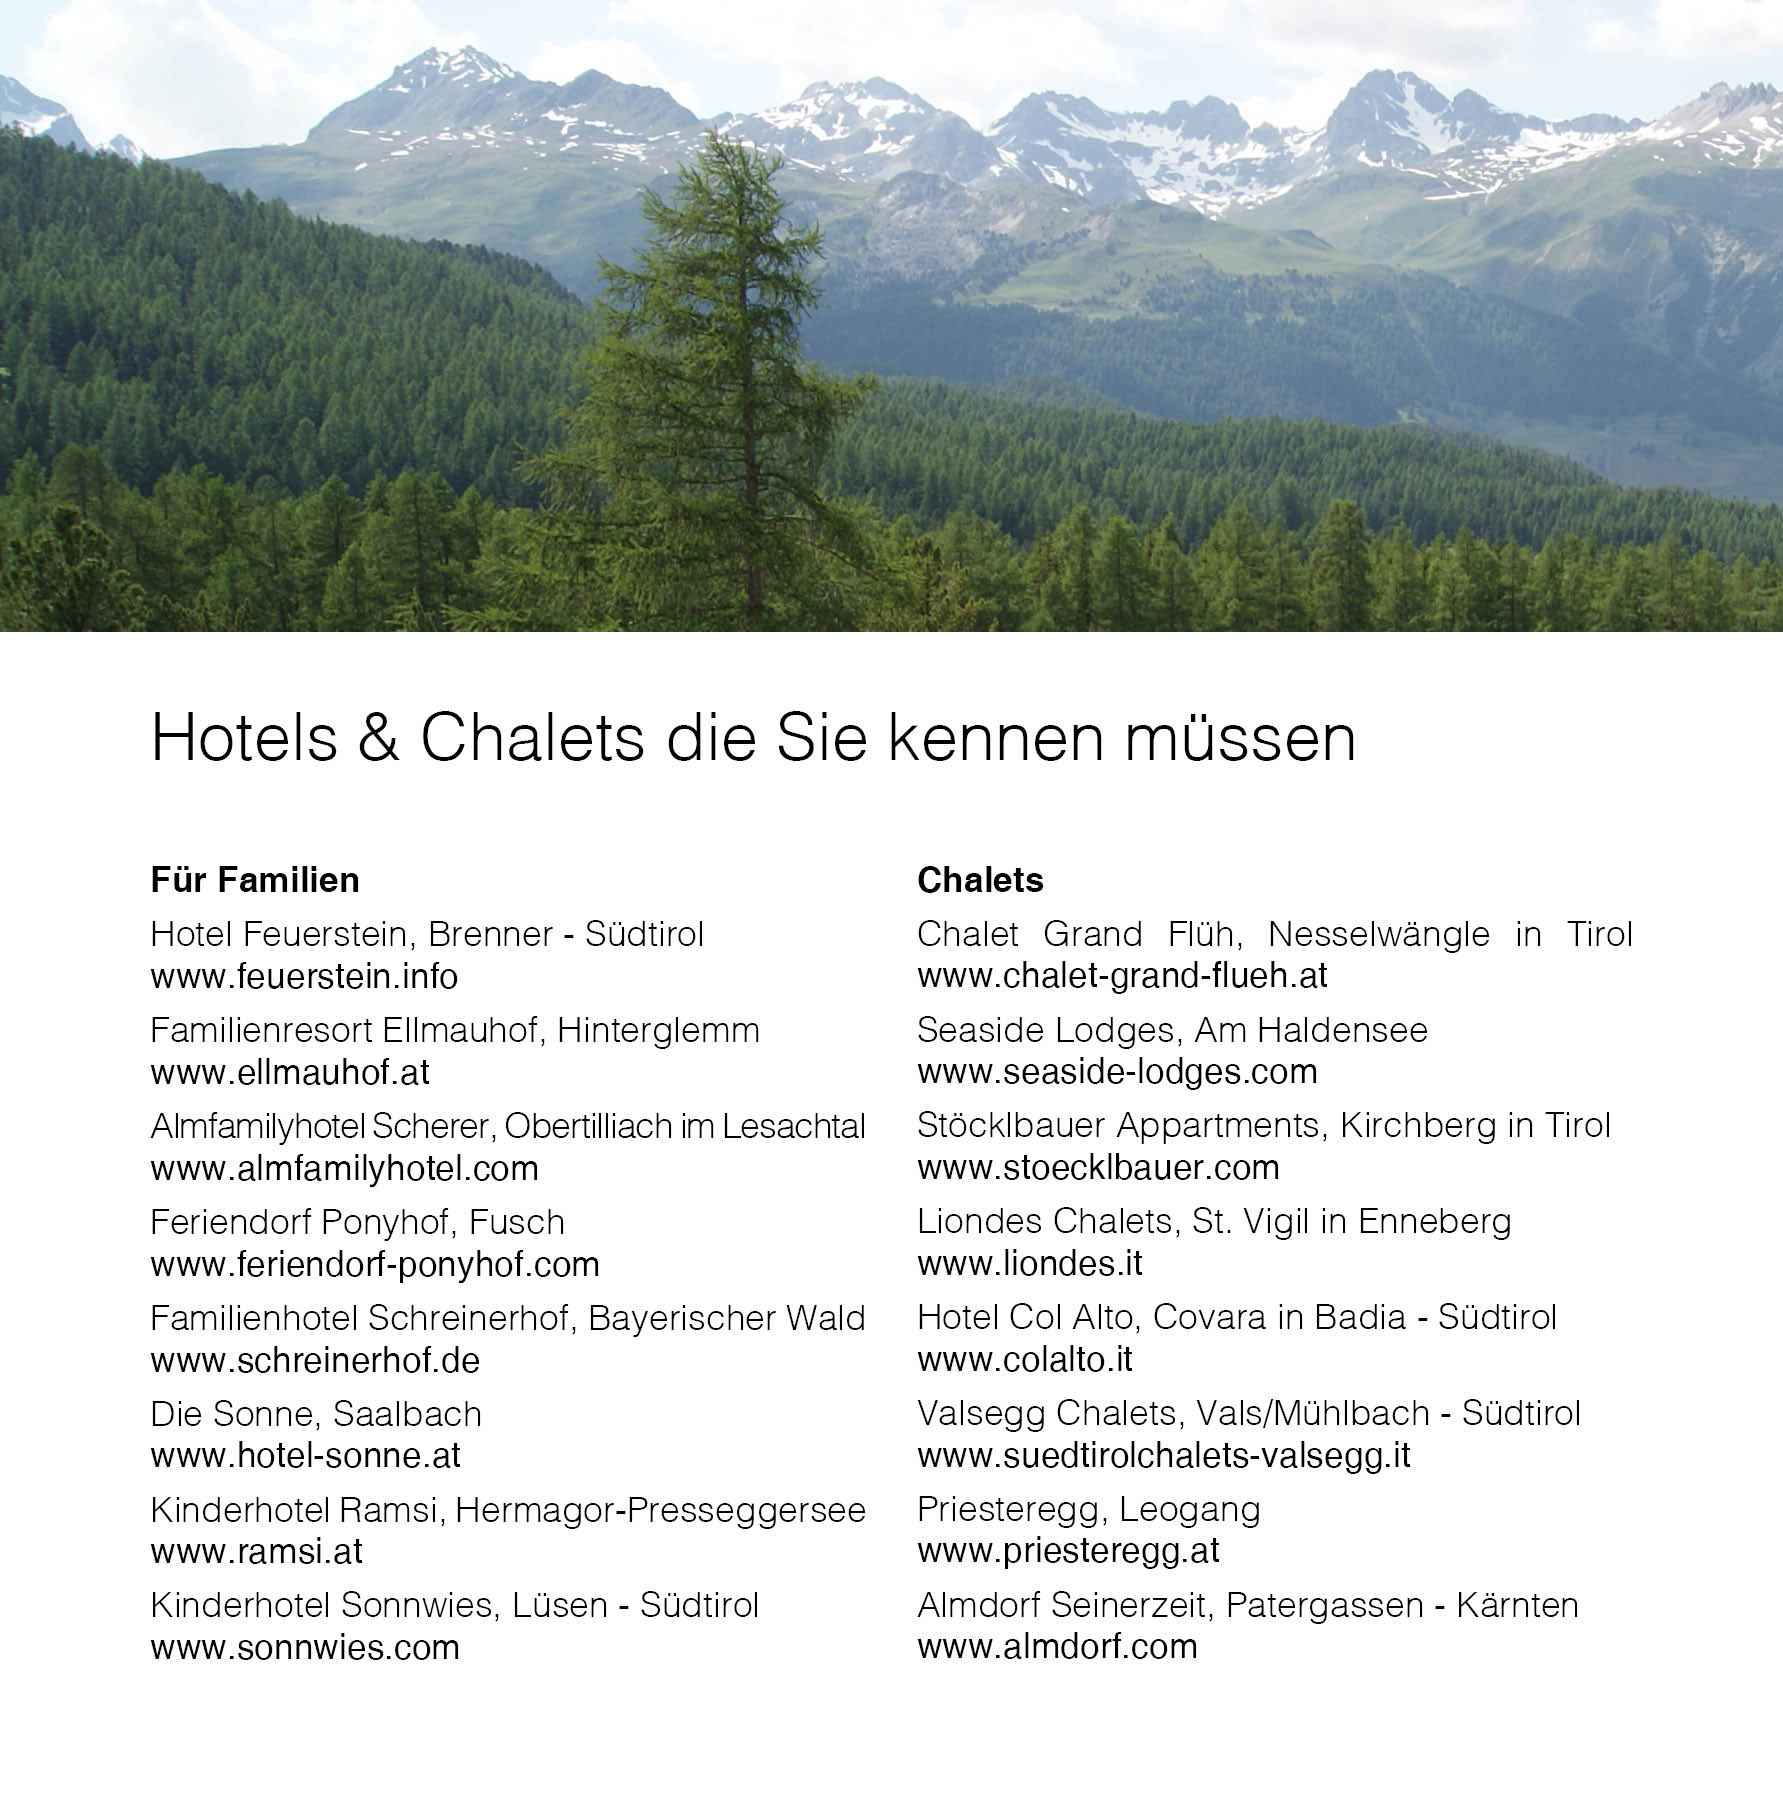 https://www.berge-exclusiv.de/wp-content/uploads/Pocket-Guide-18041614.jpg